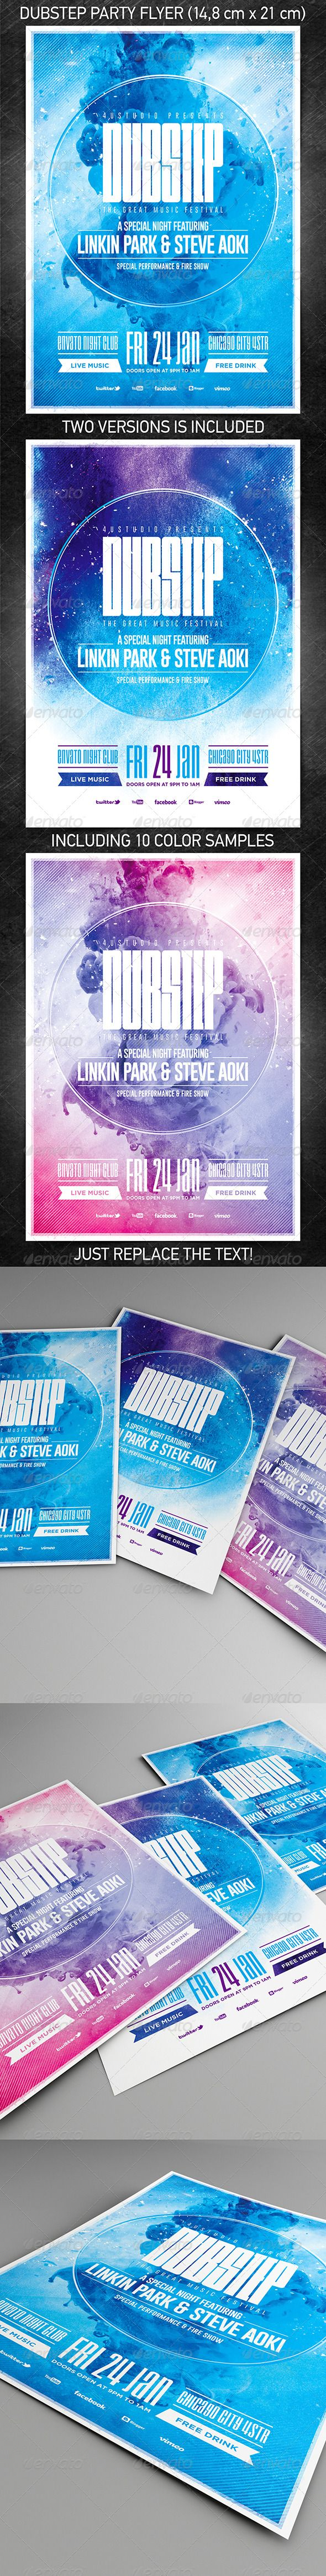 Dubstep party flyer mainstream music party flyer and for Mainstream house music